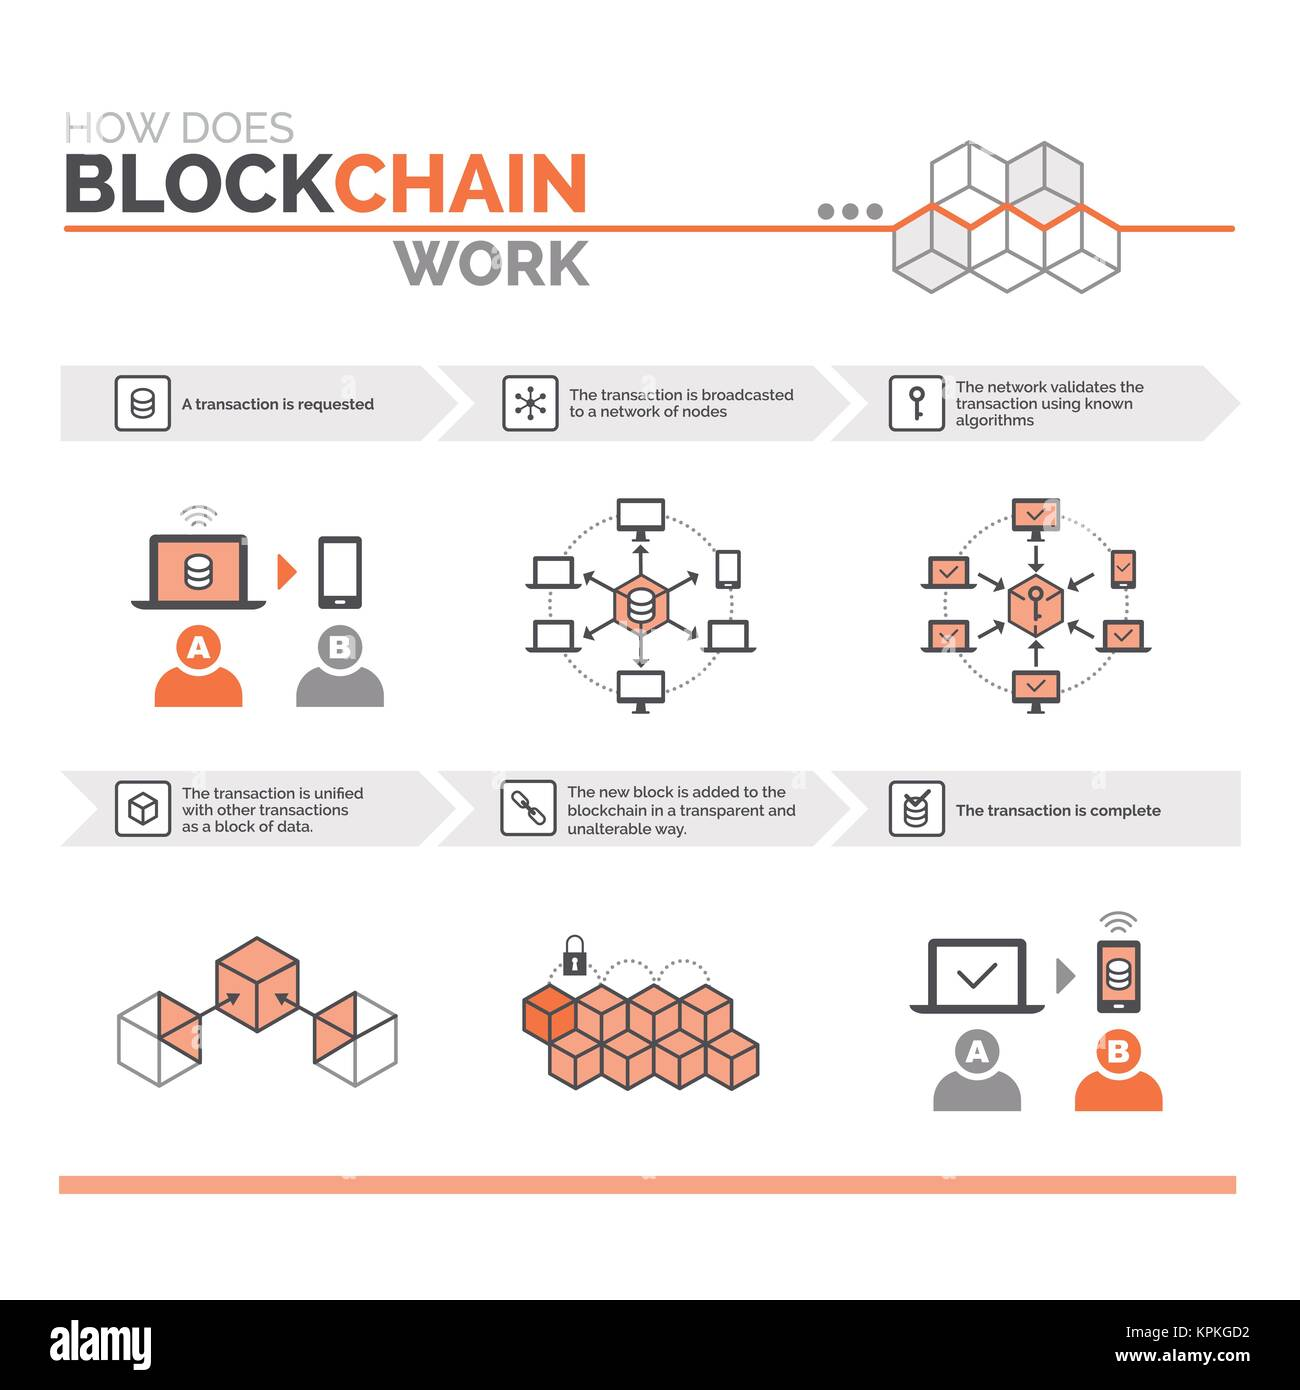 how does a blockchain work cryptocurrency and secure transactions infographic